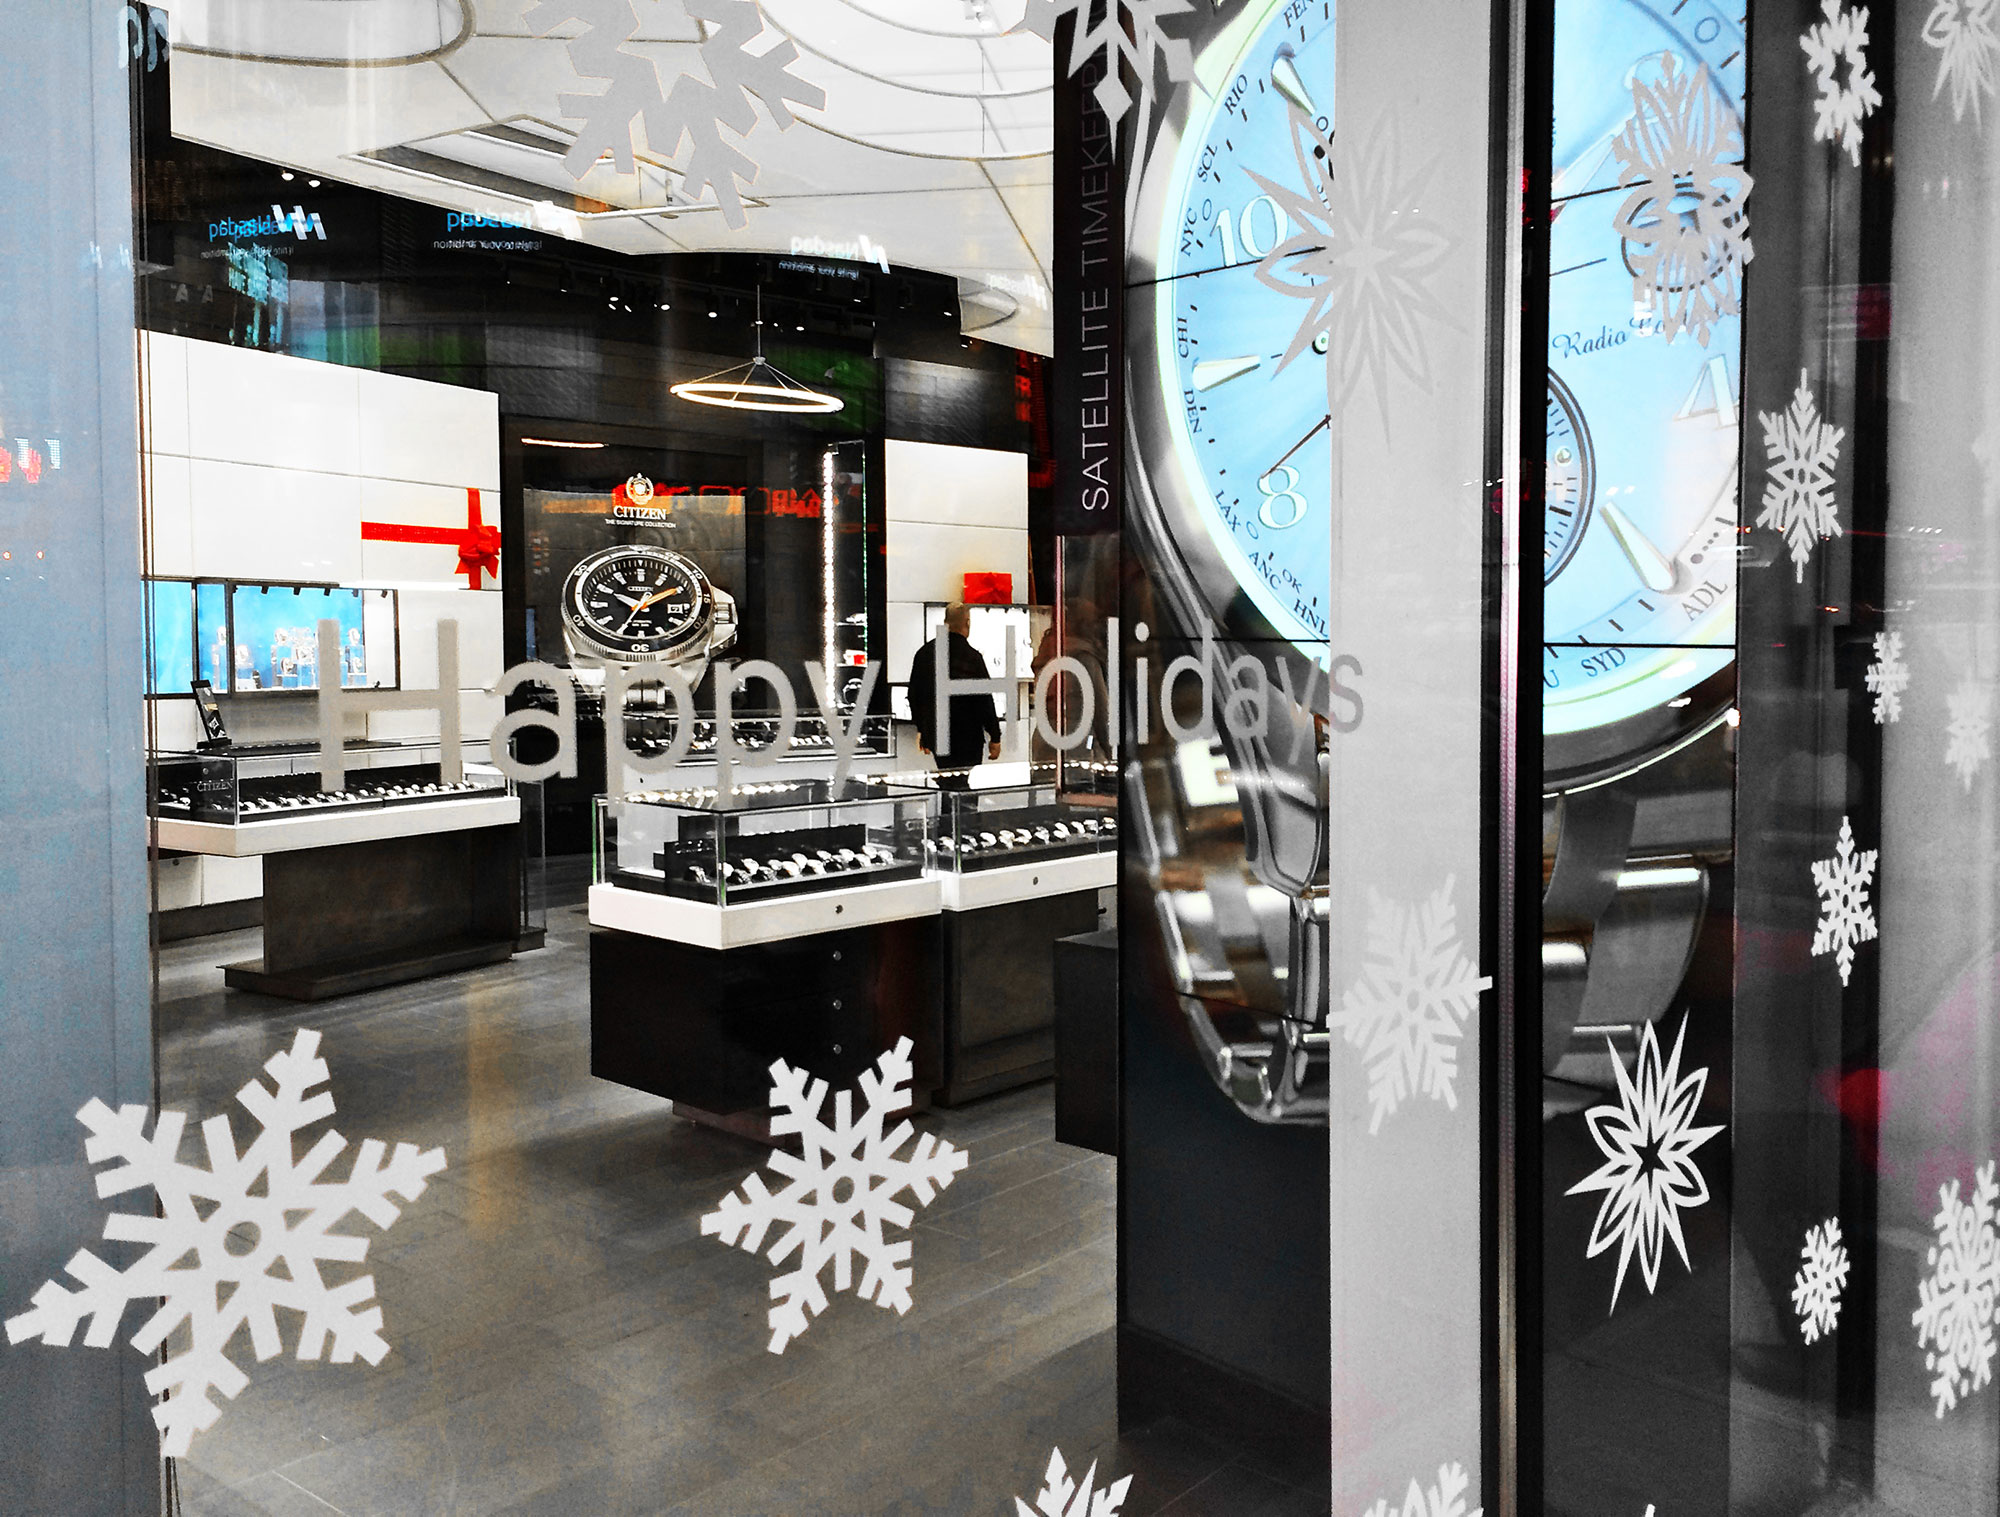 Clear Window Clings for Christmas and Holiday Interior and Exterior Decoration.